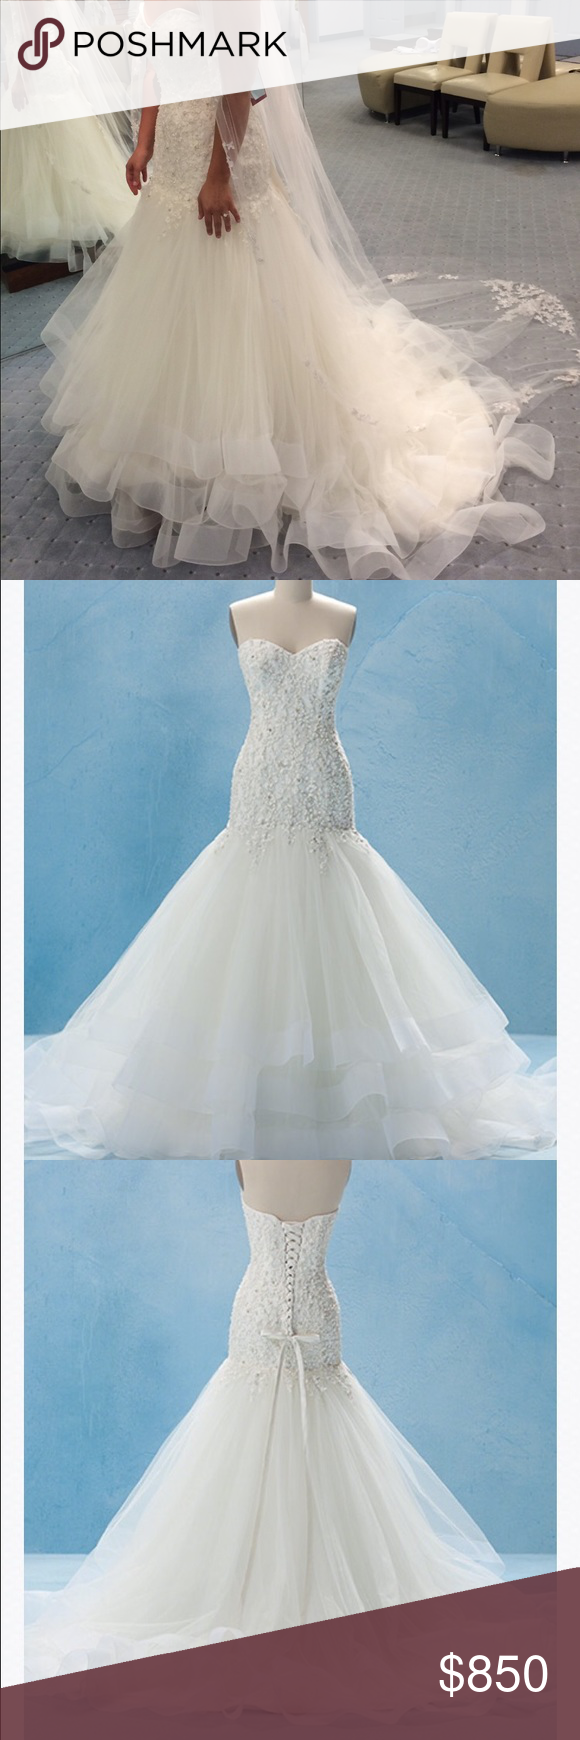 Cinderella wedding dress alfred angelo  Alfred Angelo Cinderella Wedding Dress Alfred Angelo Cinderella